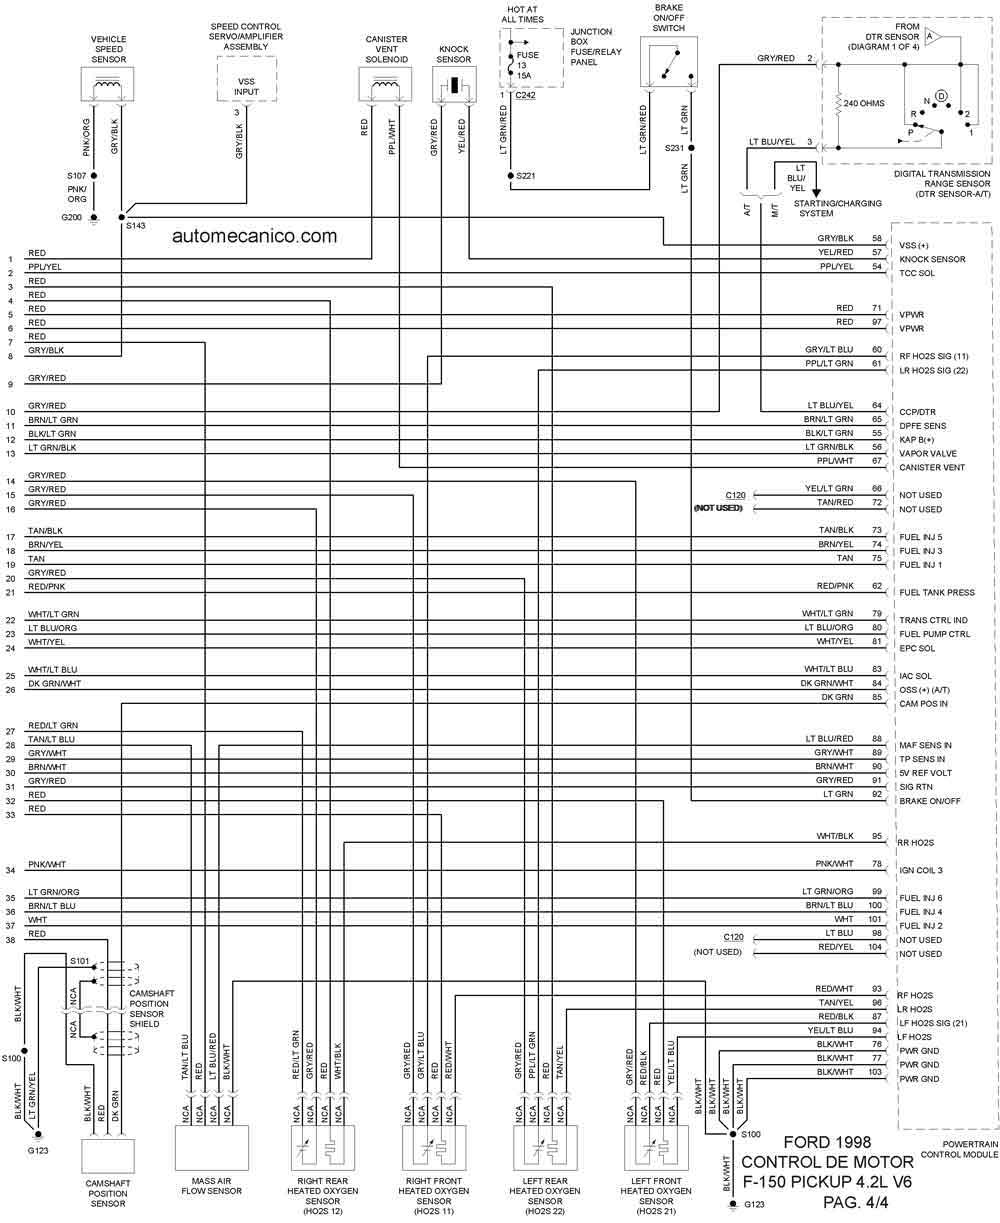 Mazda Cx 9 Fuse Box Diagram Mazda CX-9 4x4 Wiring Diagram